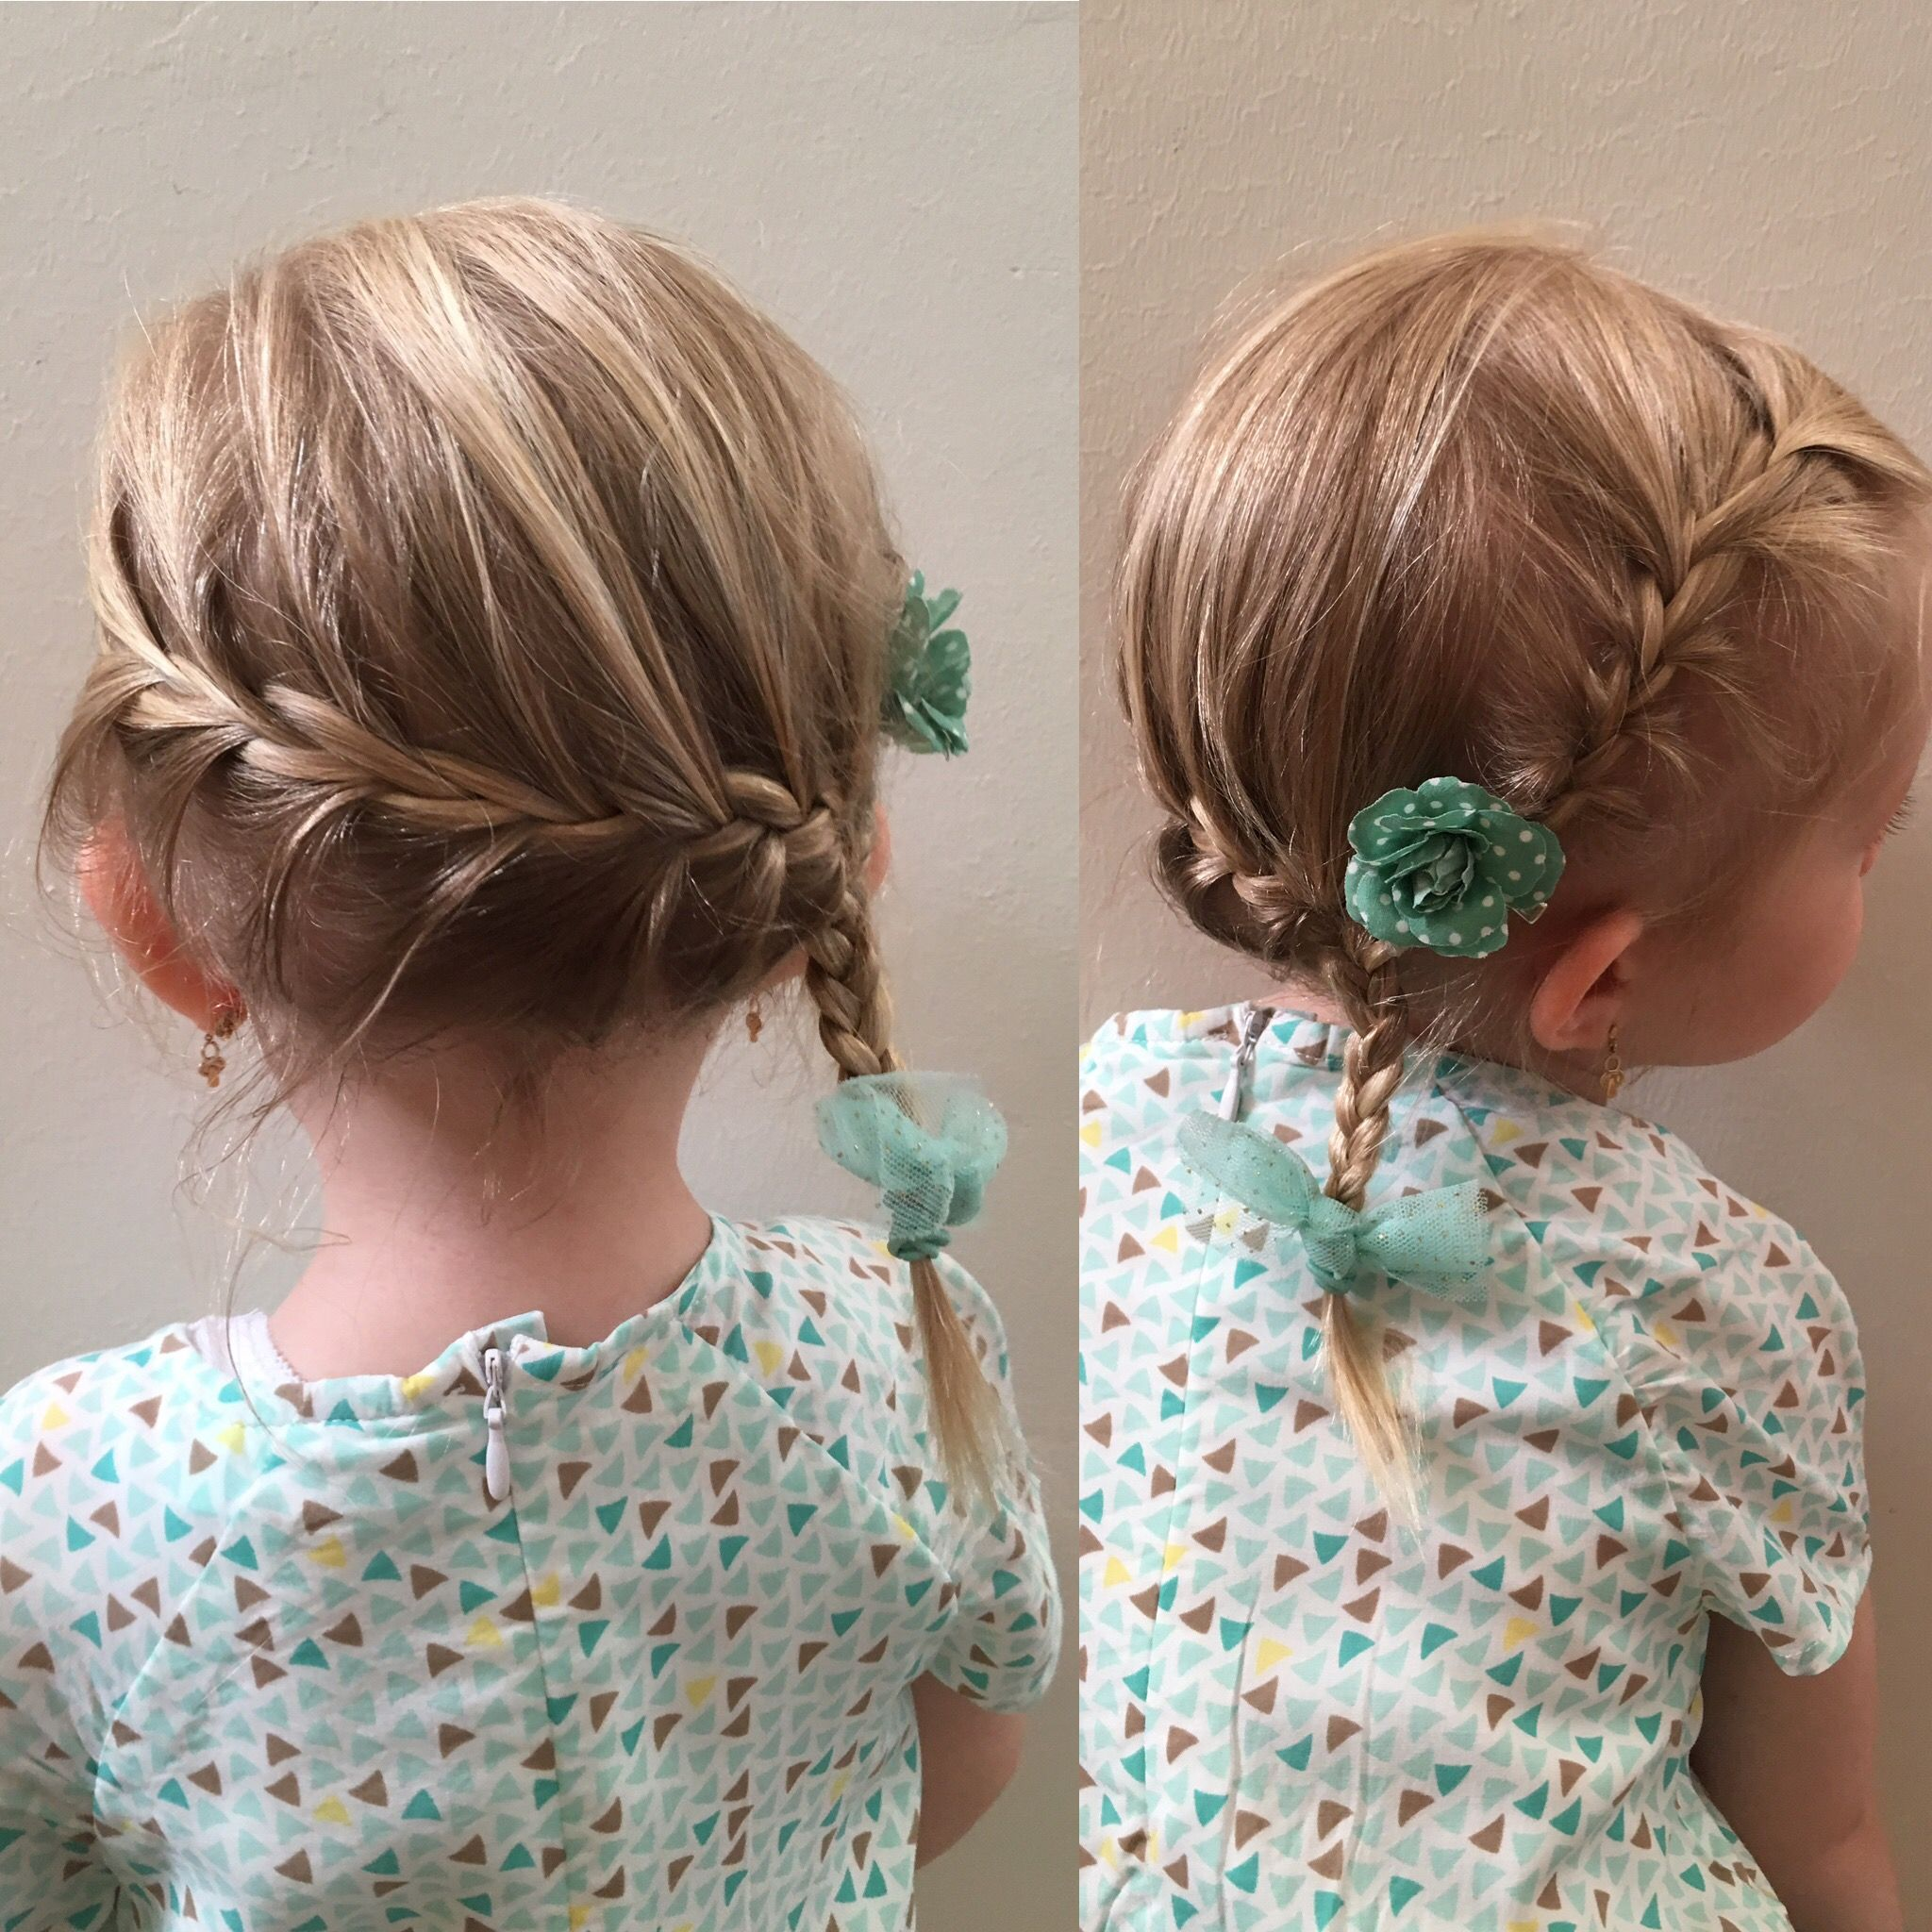 Braid Like Elsa From Frozen For Little Girls With Fine Hair Toddler Hairstyles Girl Fine Hair Elsa Hair Kids Braided Hairstyles